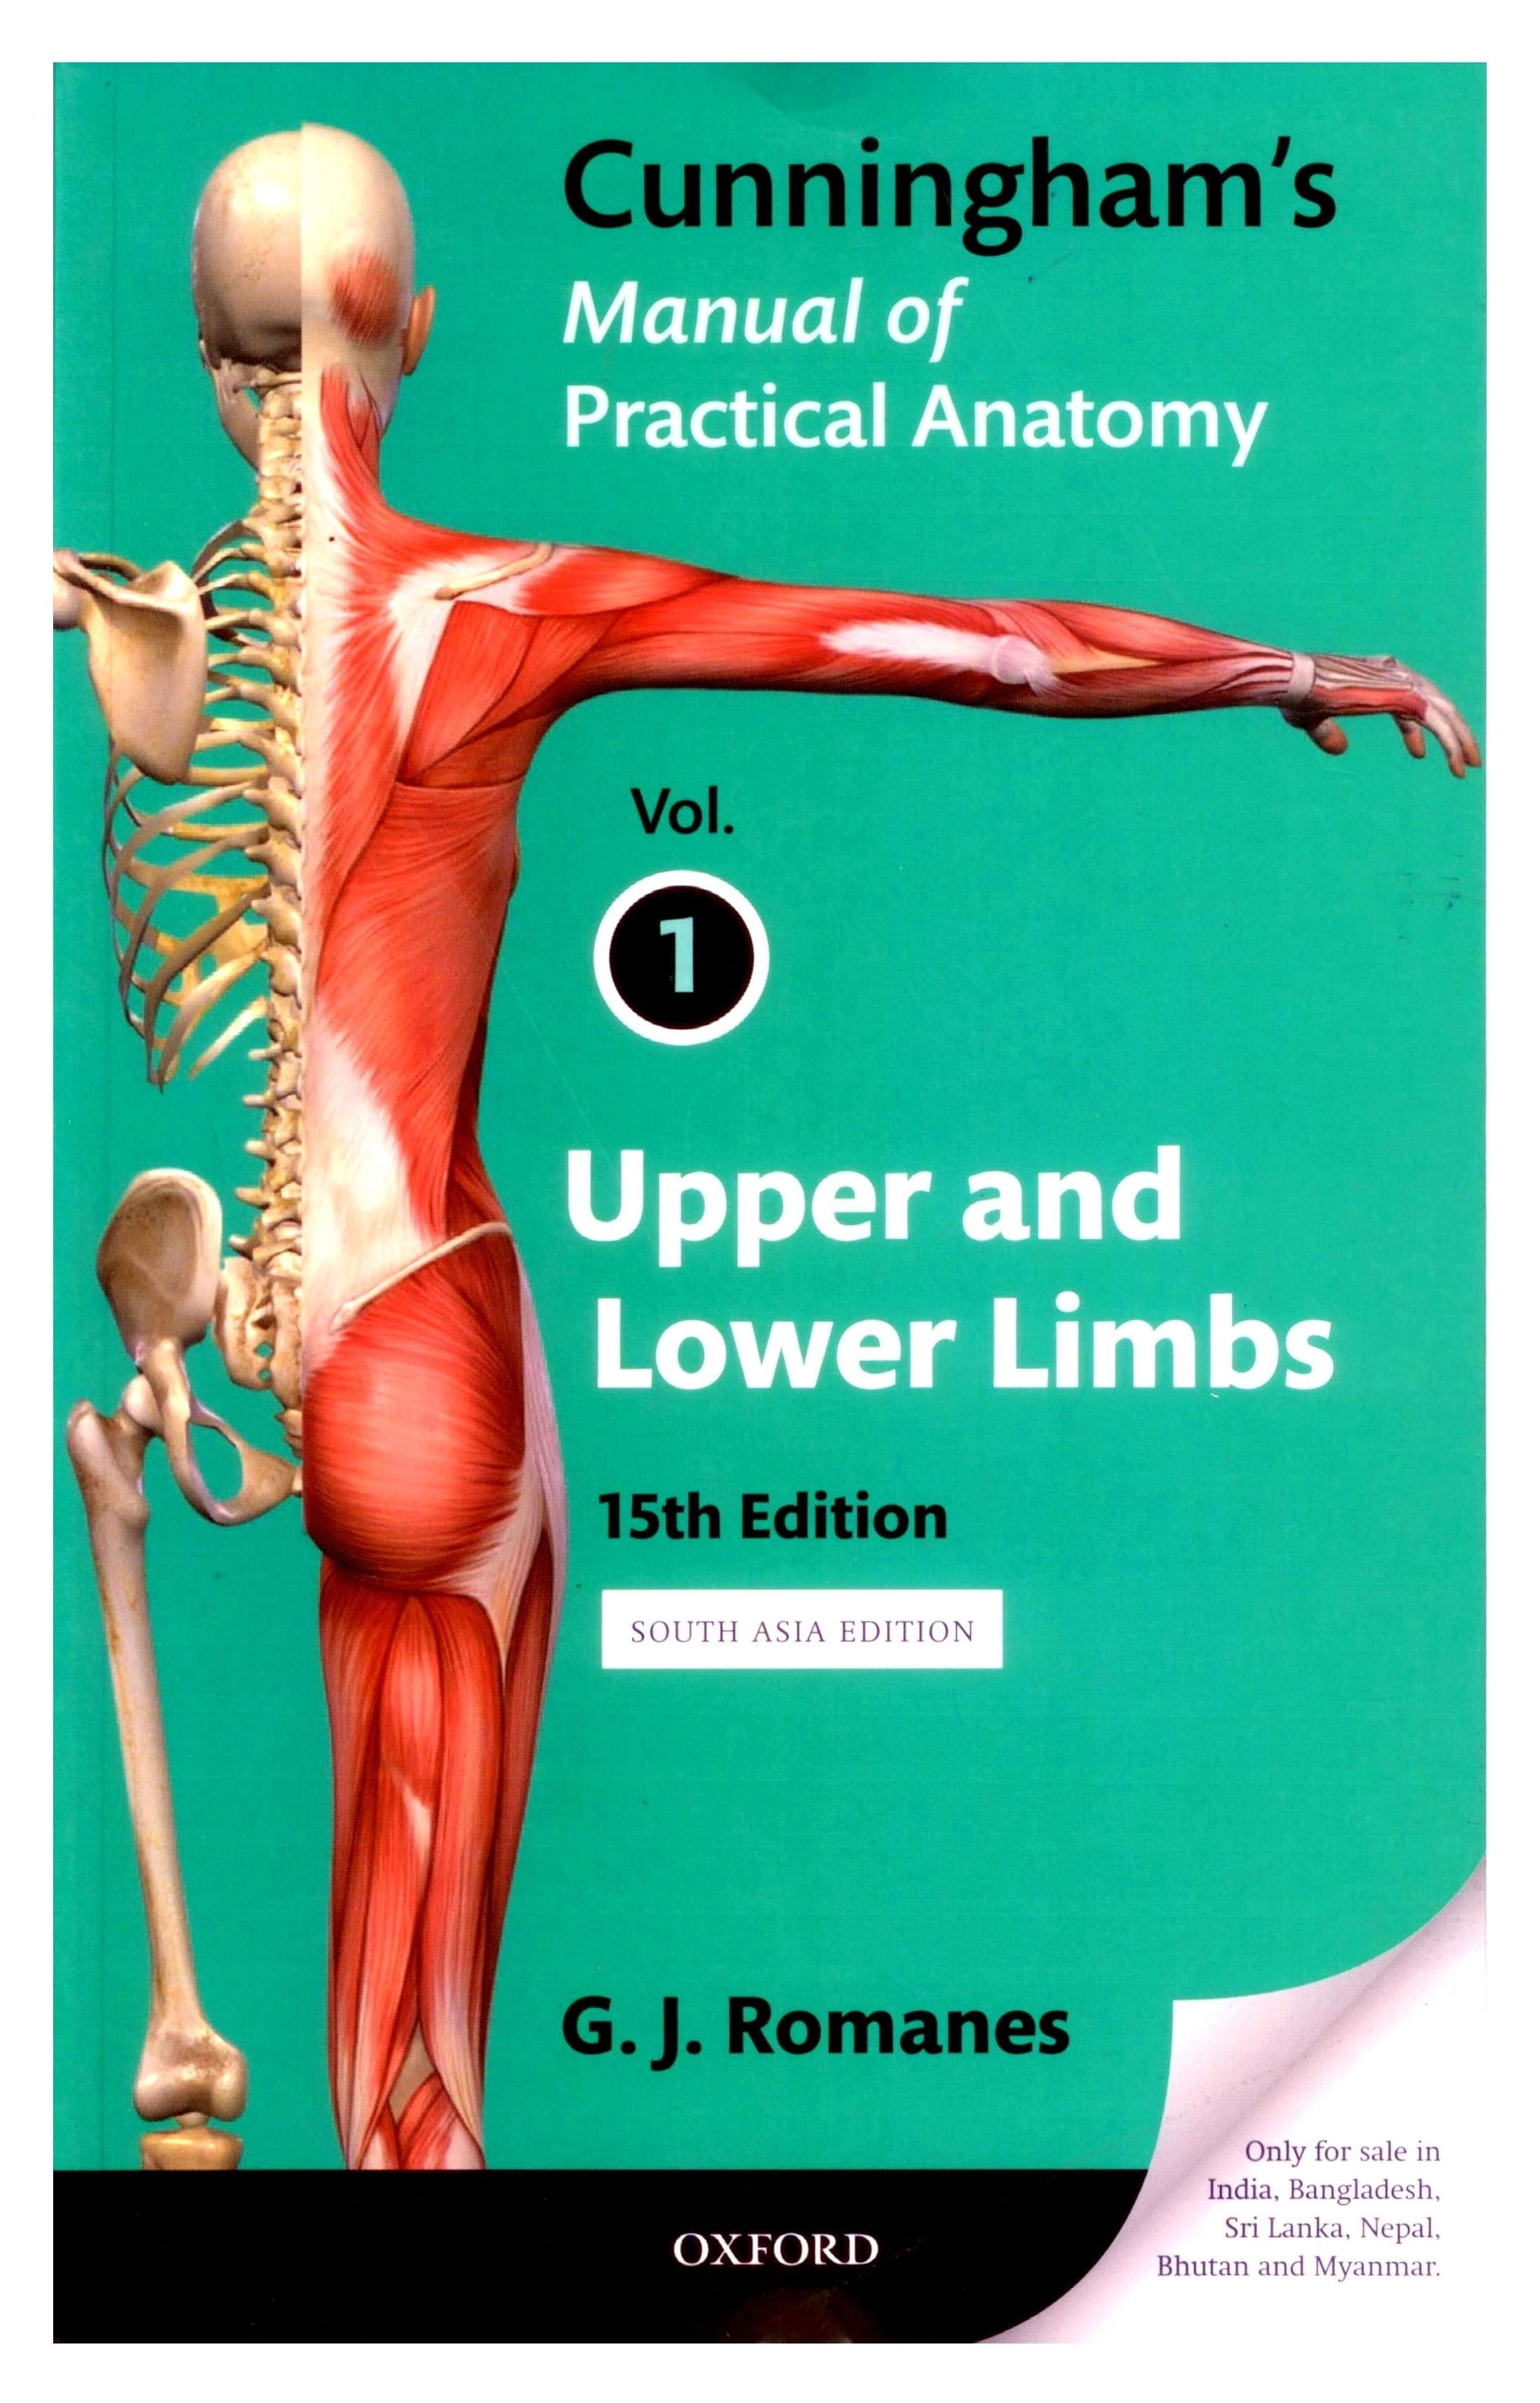 cunningham's manual of practical anatomy 15th edition pdf